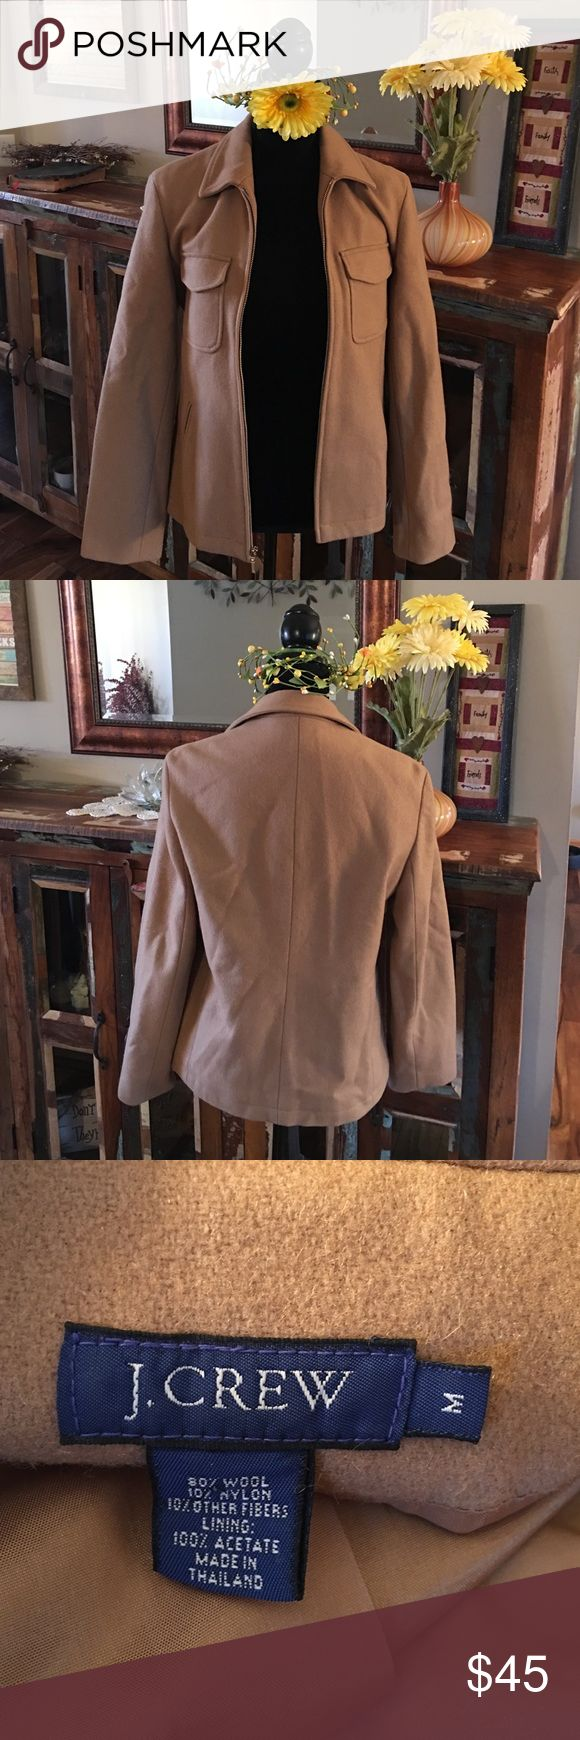 J. Crew Camel Zip Up Jacket Size M This is it - the perfect jacket. This is a camel colorized front zip jacket from J. Crew. Worn only a few times because apparently wool and my skin aren't fond of each other. Excellent condition. Size is medium. J. Crew Jackets & Coats